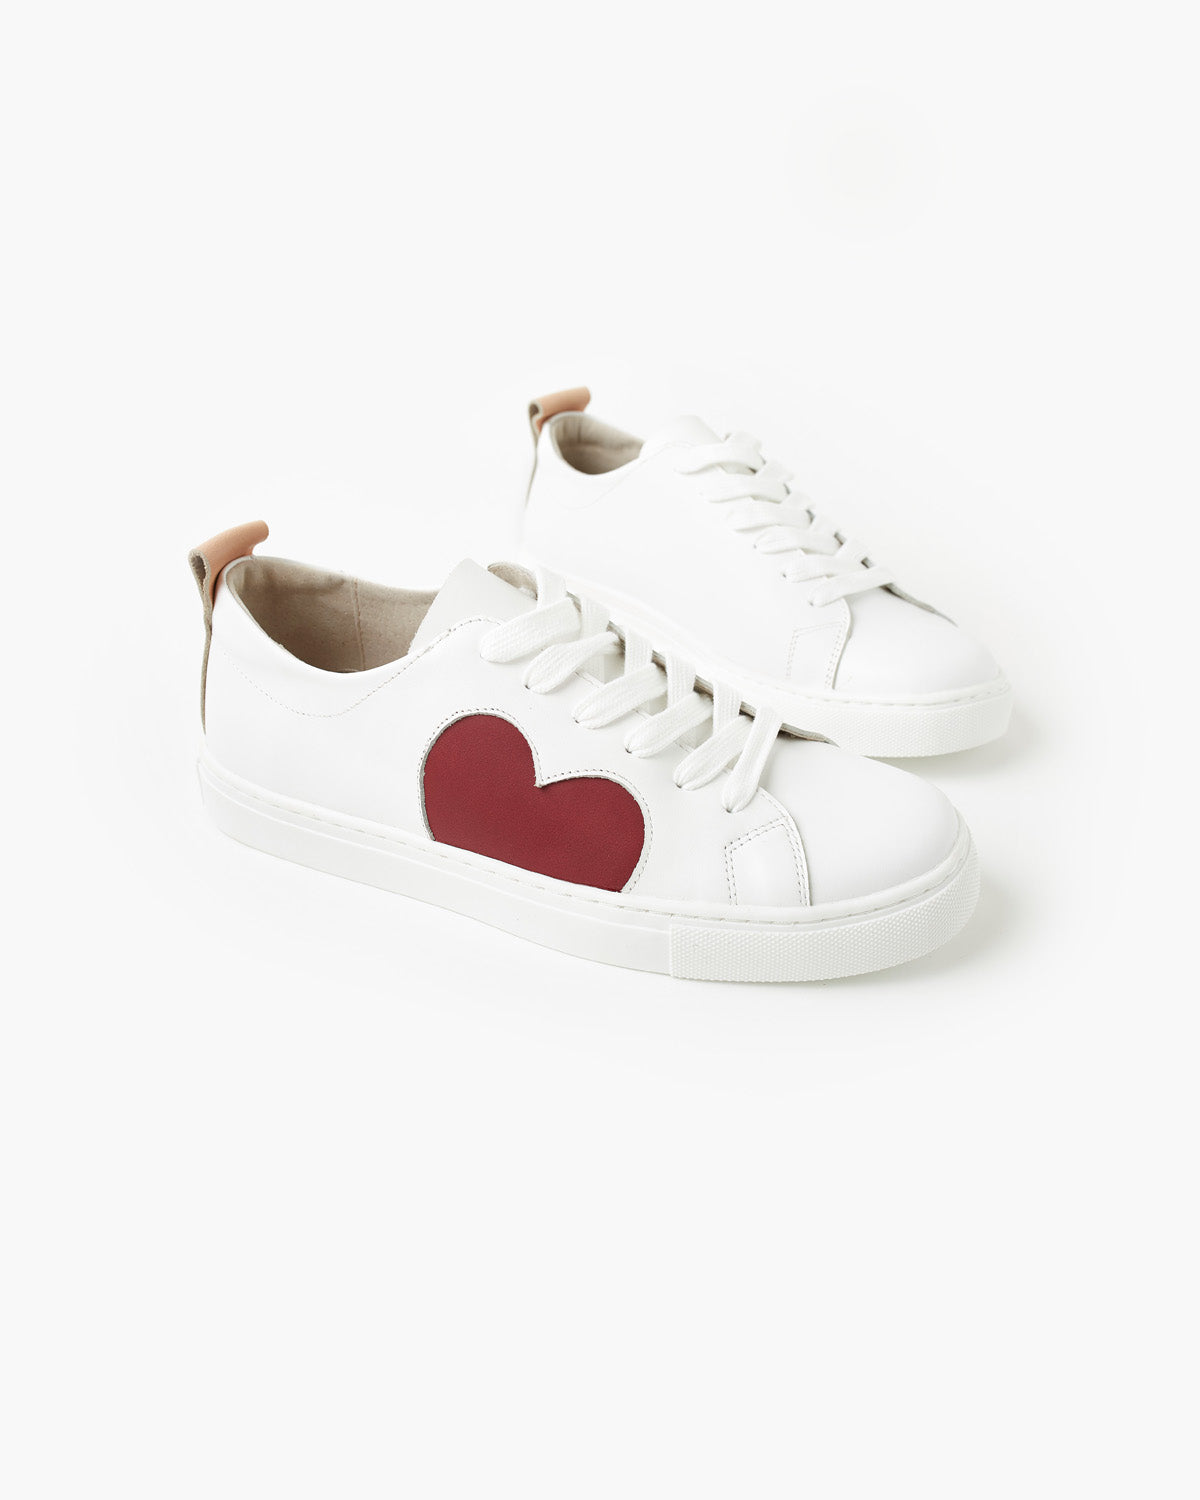 Heart Leather Sneaker - Plum